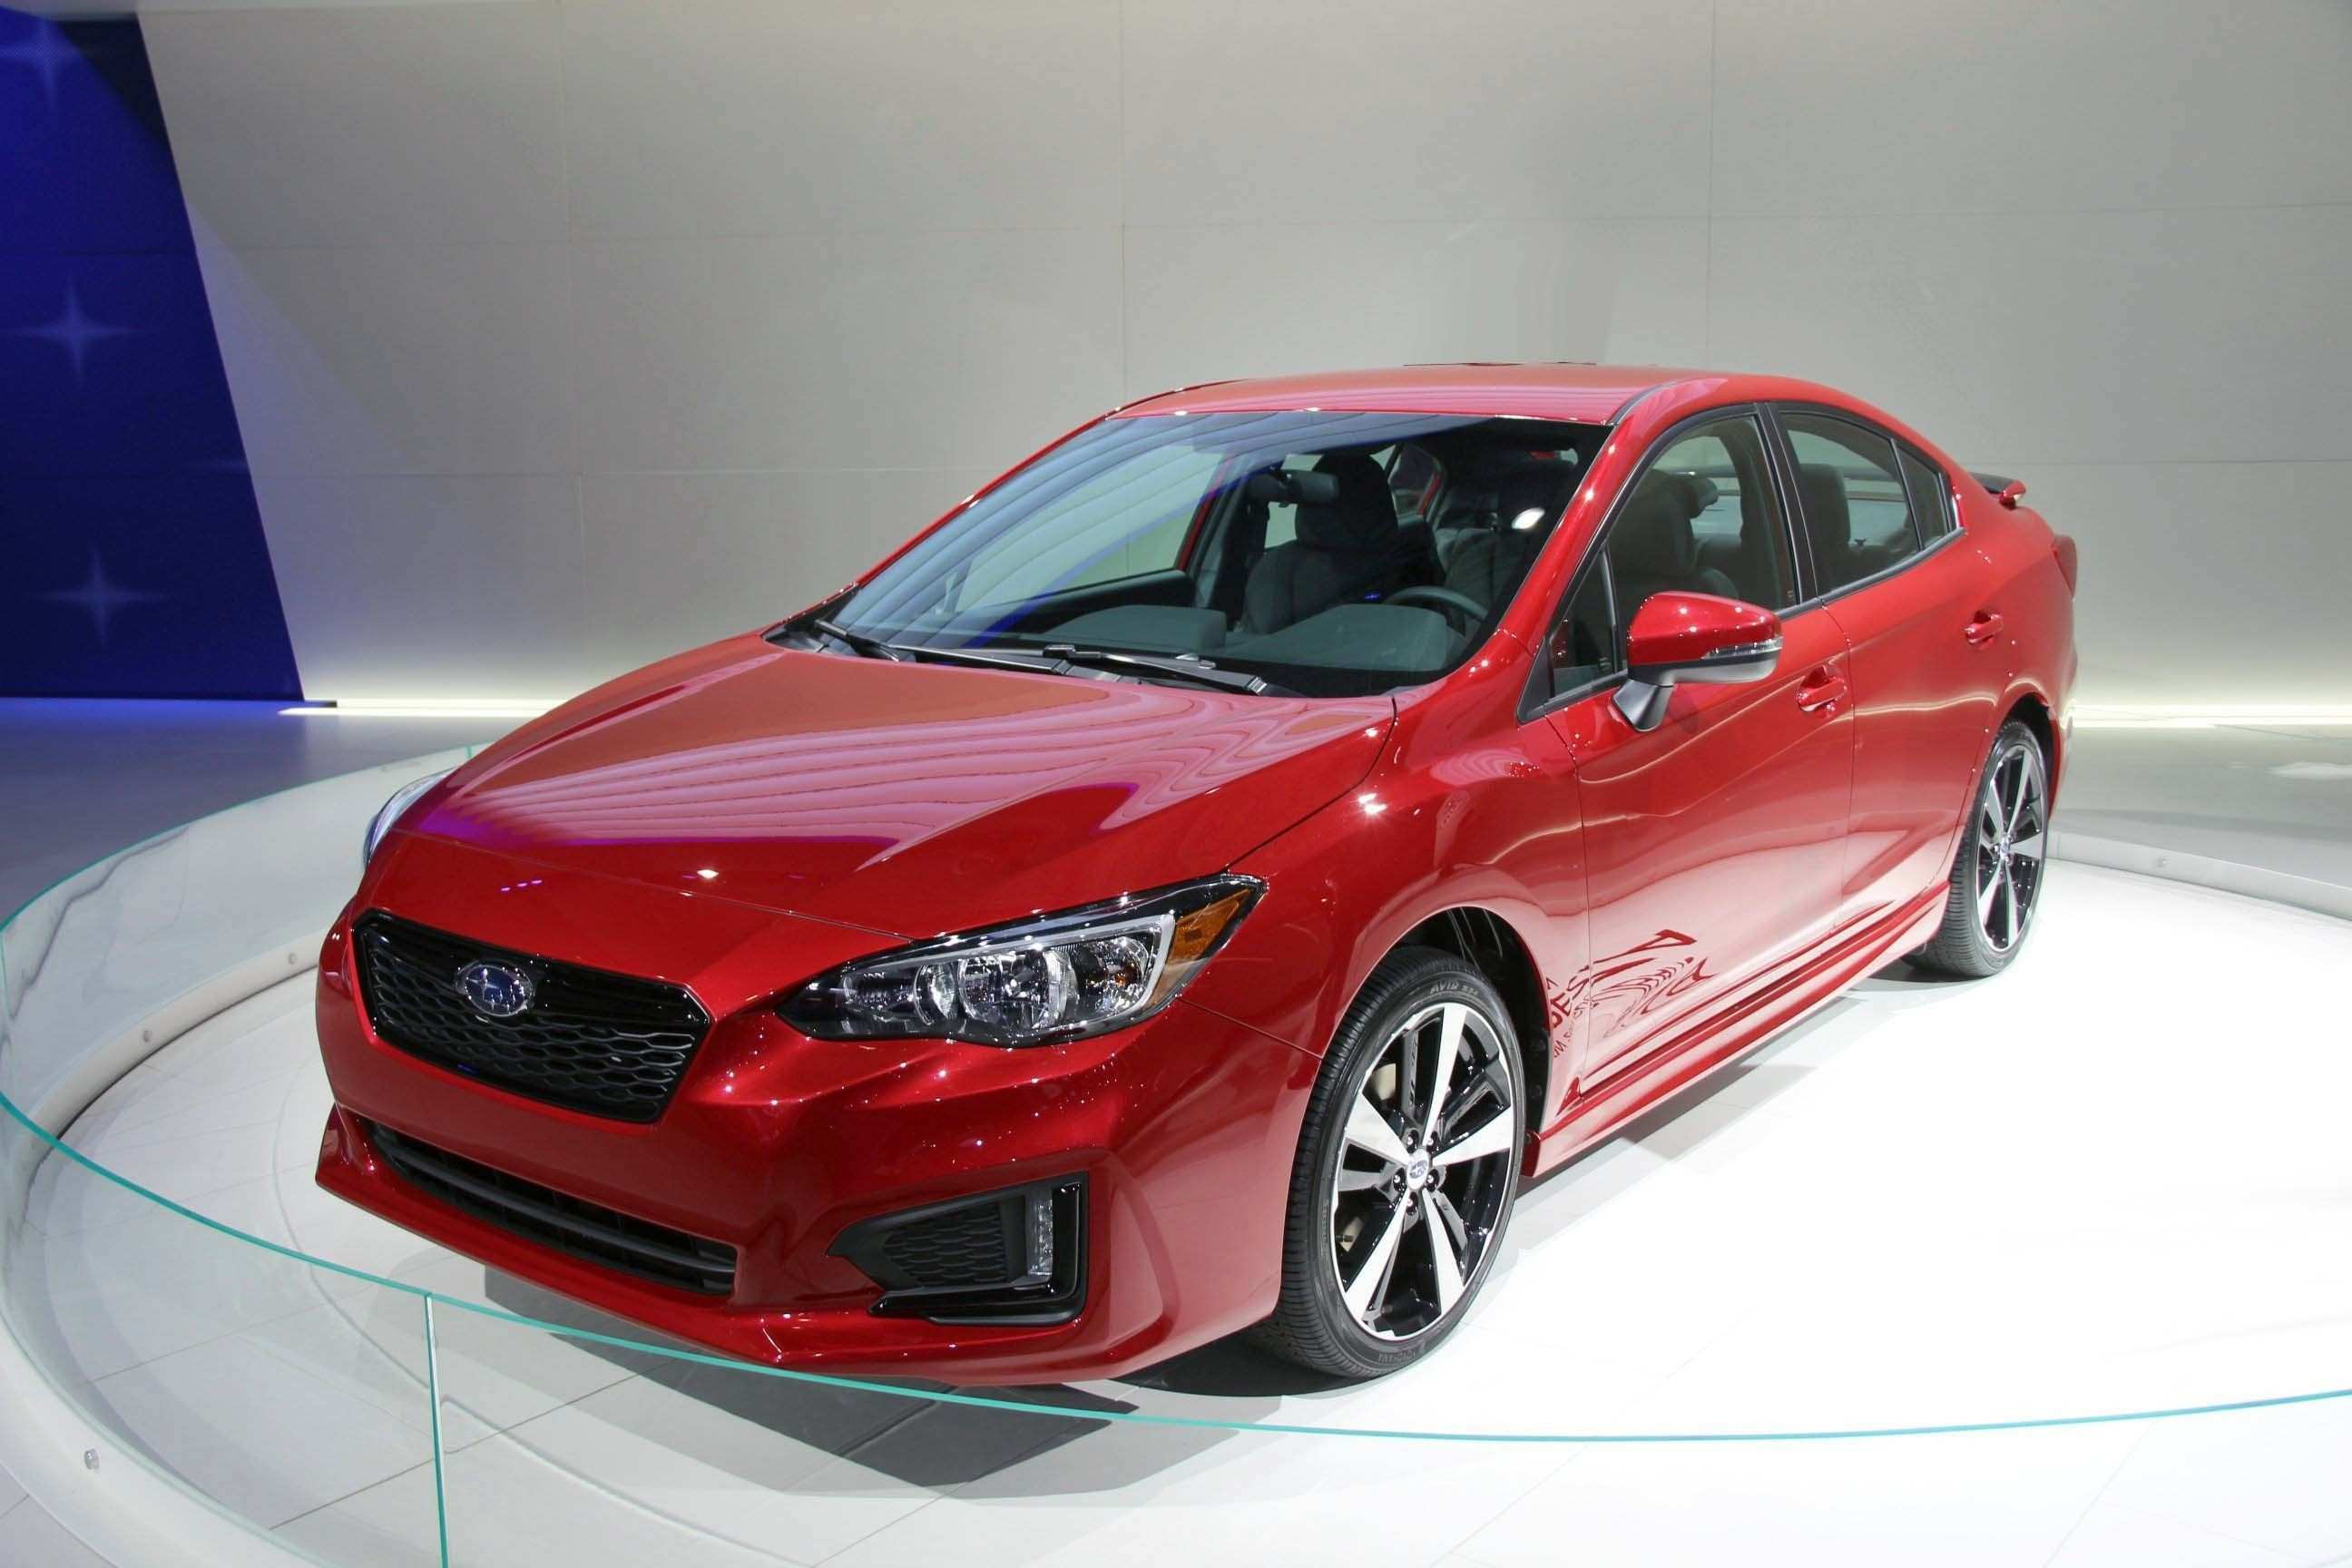 52 Great The New Subaru 2019 Review Specs And Release Date Concept for The New Subaru 2019 Review Specs And Release Date